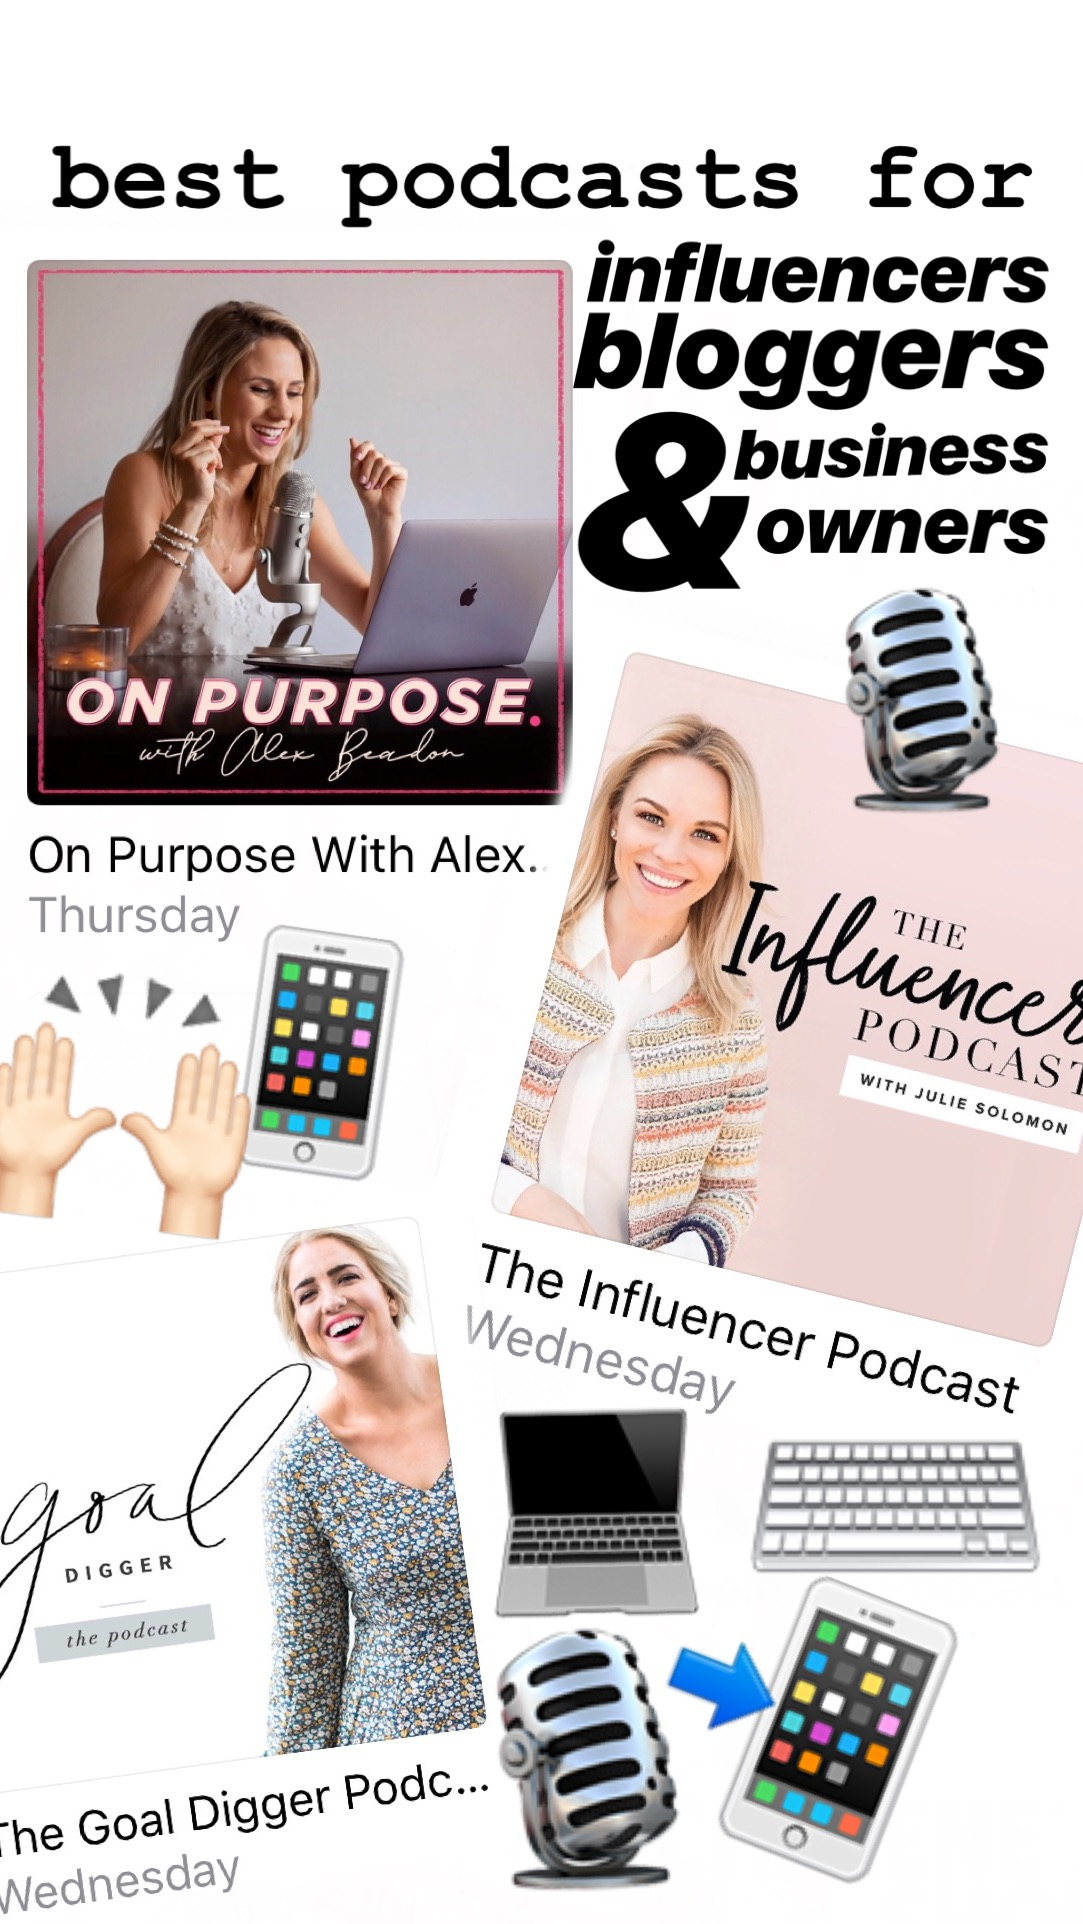 Best apps and tools for influencers, bloggers, and business owners!